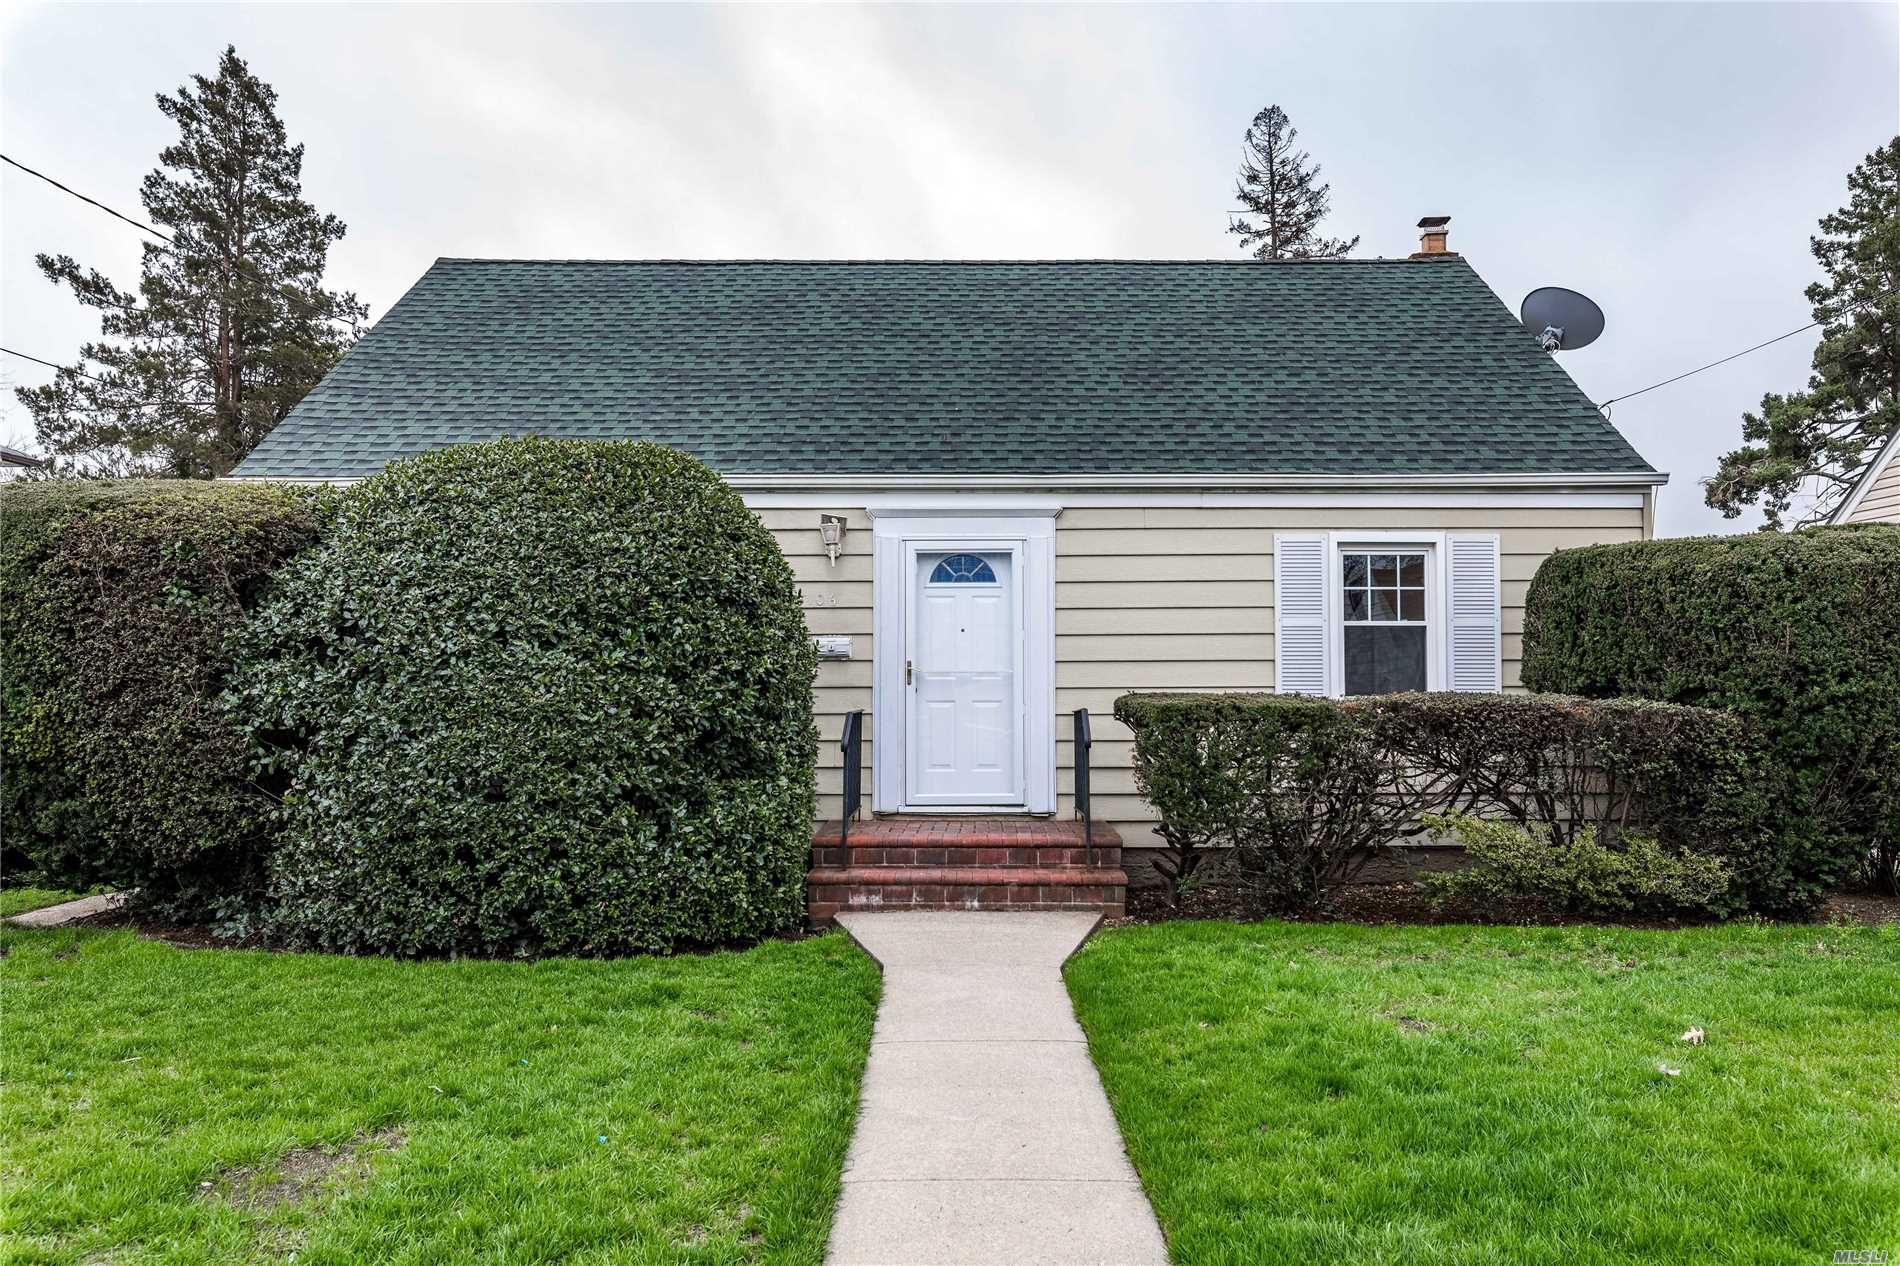 Move in ready and freshly painted! Spacious cape with hardwood floors & renovated bath. Convenient location- near shopping, Hofstra, hospitals & parkways.